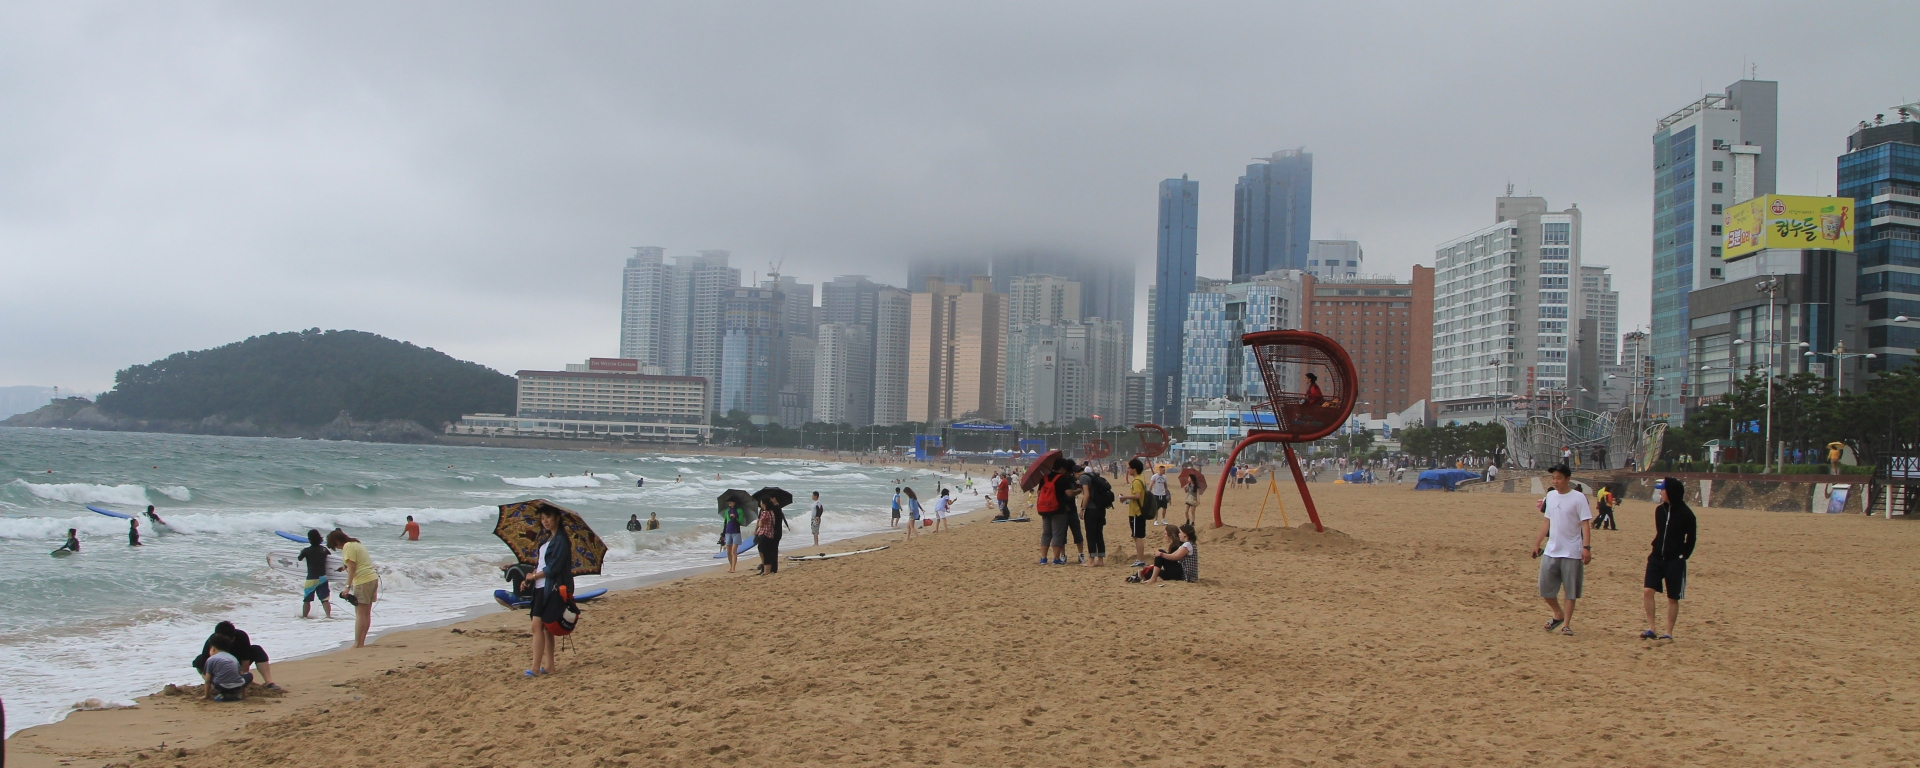 Cloudy day at Haeundae beach Busan Korea